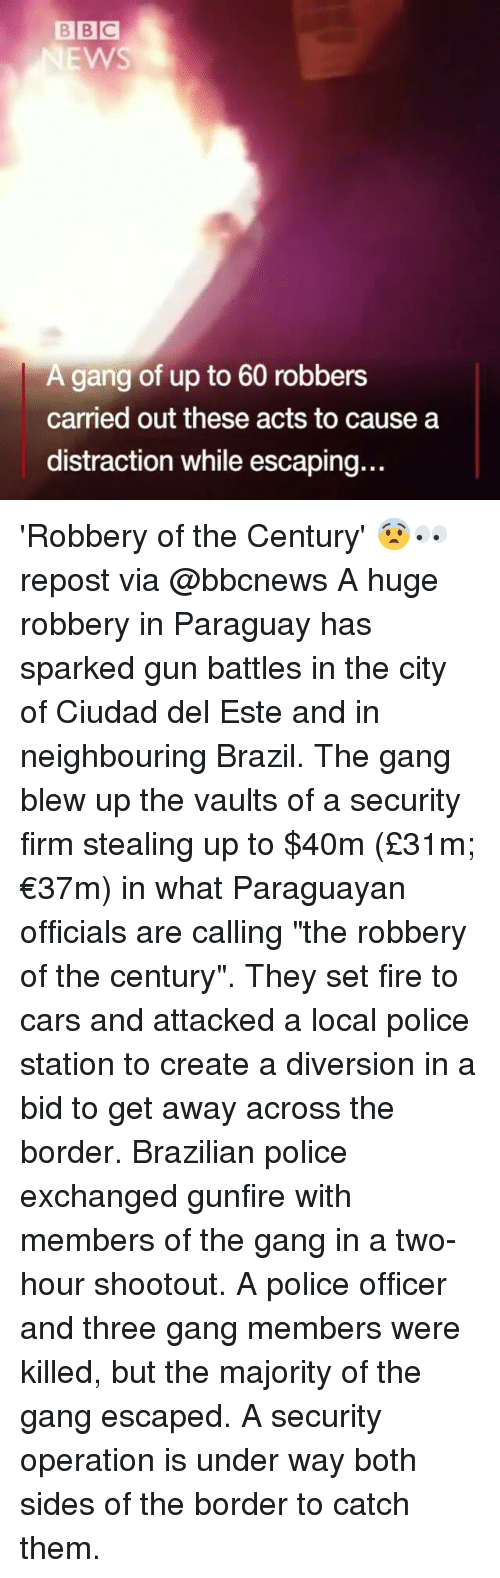 """Diversion: BBC  EWS  A gang of up to 60 robbers  carried out these acts to cause a  distraction while escaping.. 'Robbery of the Century' 😨👀 repost via @bbcnews A huge robbery in Paraguay has sparked gun battles in the city of Ciudad del Este and in neighbouring Brazil. The gang blew up the vaults of a security firm stealing up to $40m (£31m; €37m) in what Paraguayan officials are calling """"the robbery of the century"""". They set fire to cars and attacked a local police station to create a diversion in a bid to get away across the border. Brazilian police exchanged gunfire with members of the gang in a two-hour shootout. A police officer and three gang members were killed, but the majority of the gang escaped. A security operation is under way both sides of the border to catch them."""